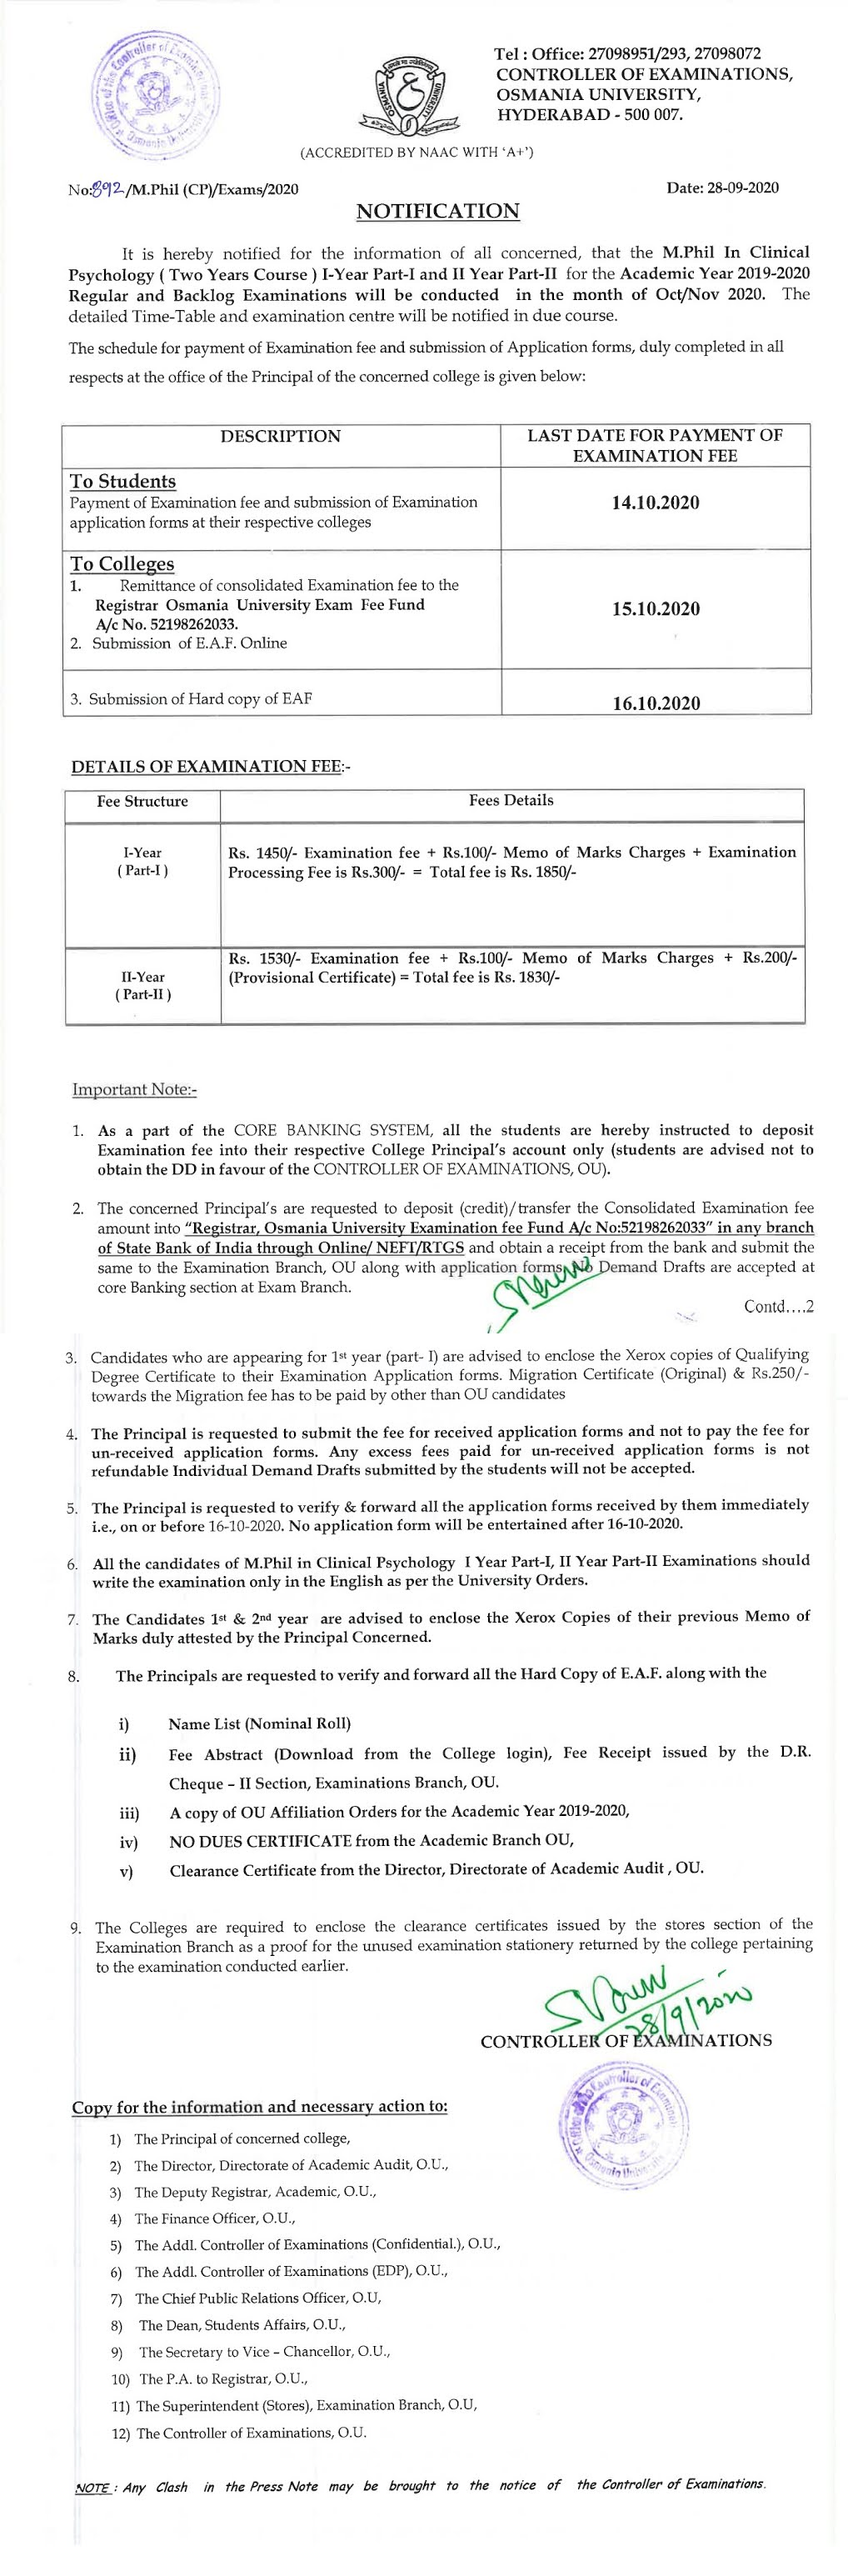 Osmania University M.Phil in Clinical Psychology 1st & 2nd Year Oct 2020 Exam Fee Notification